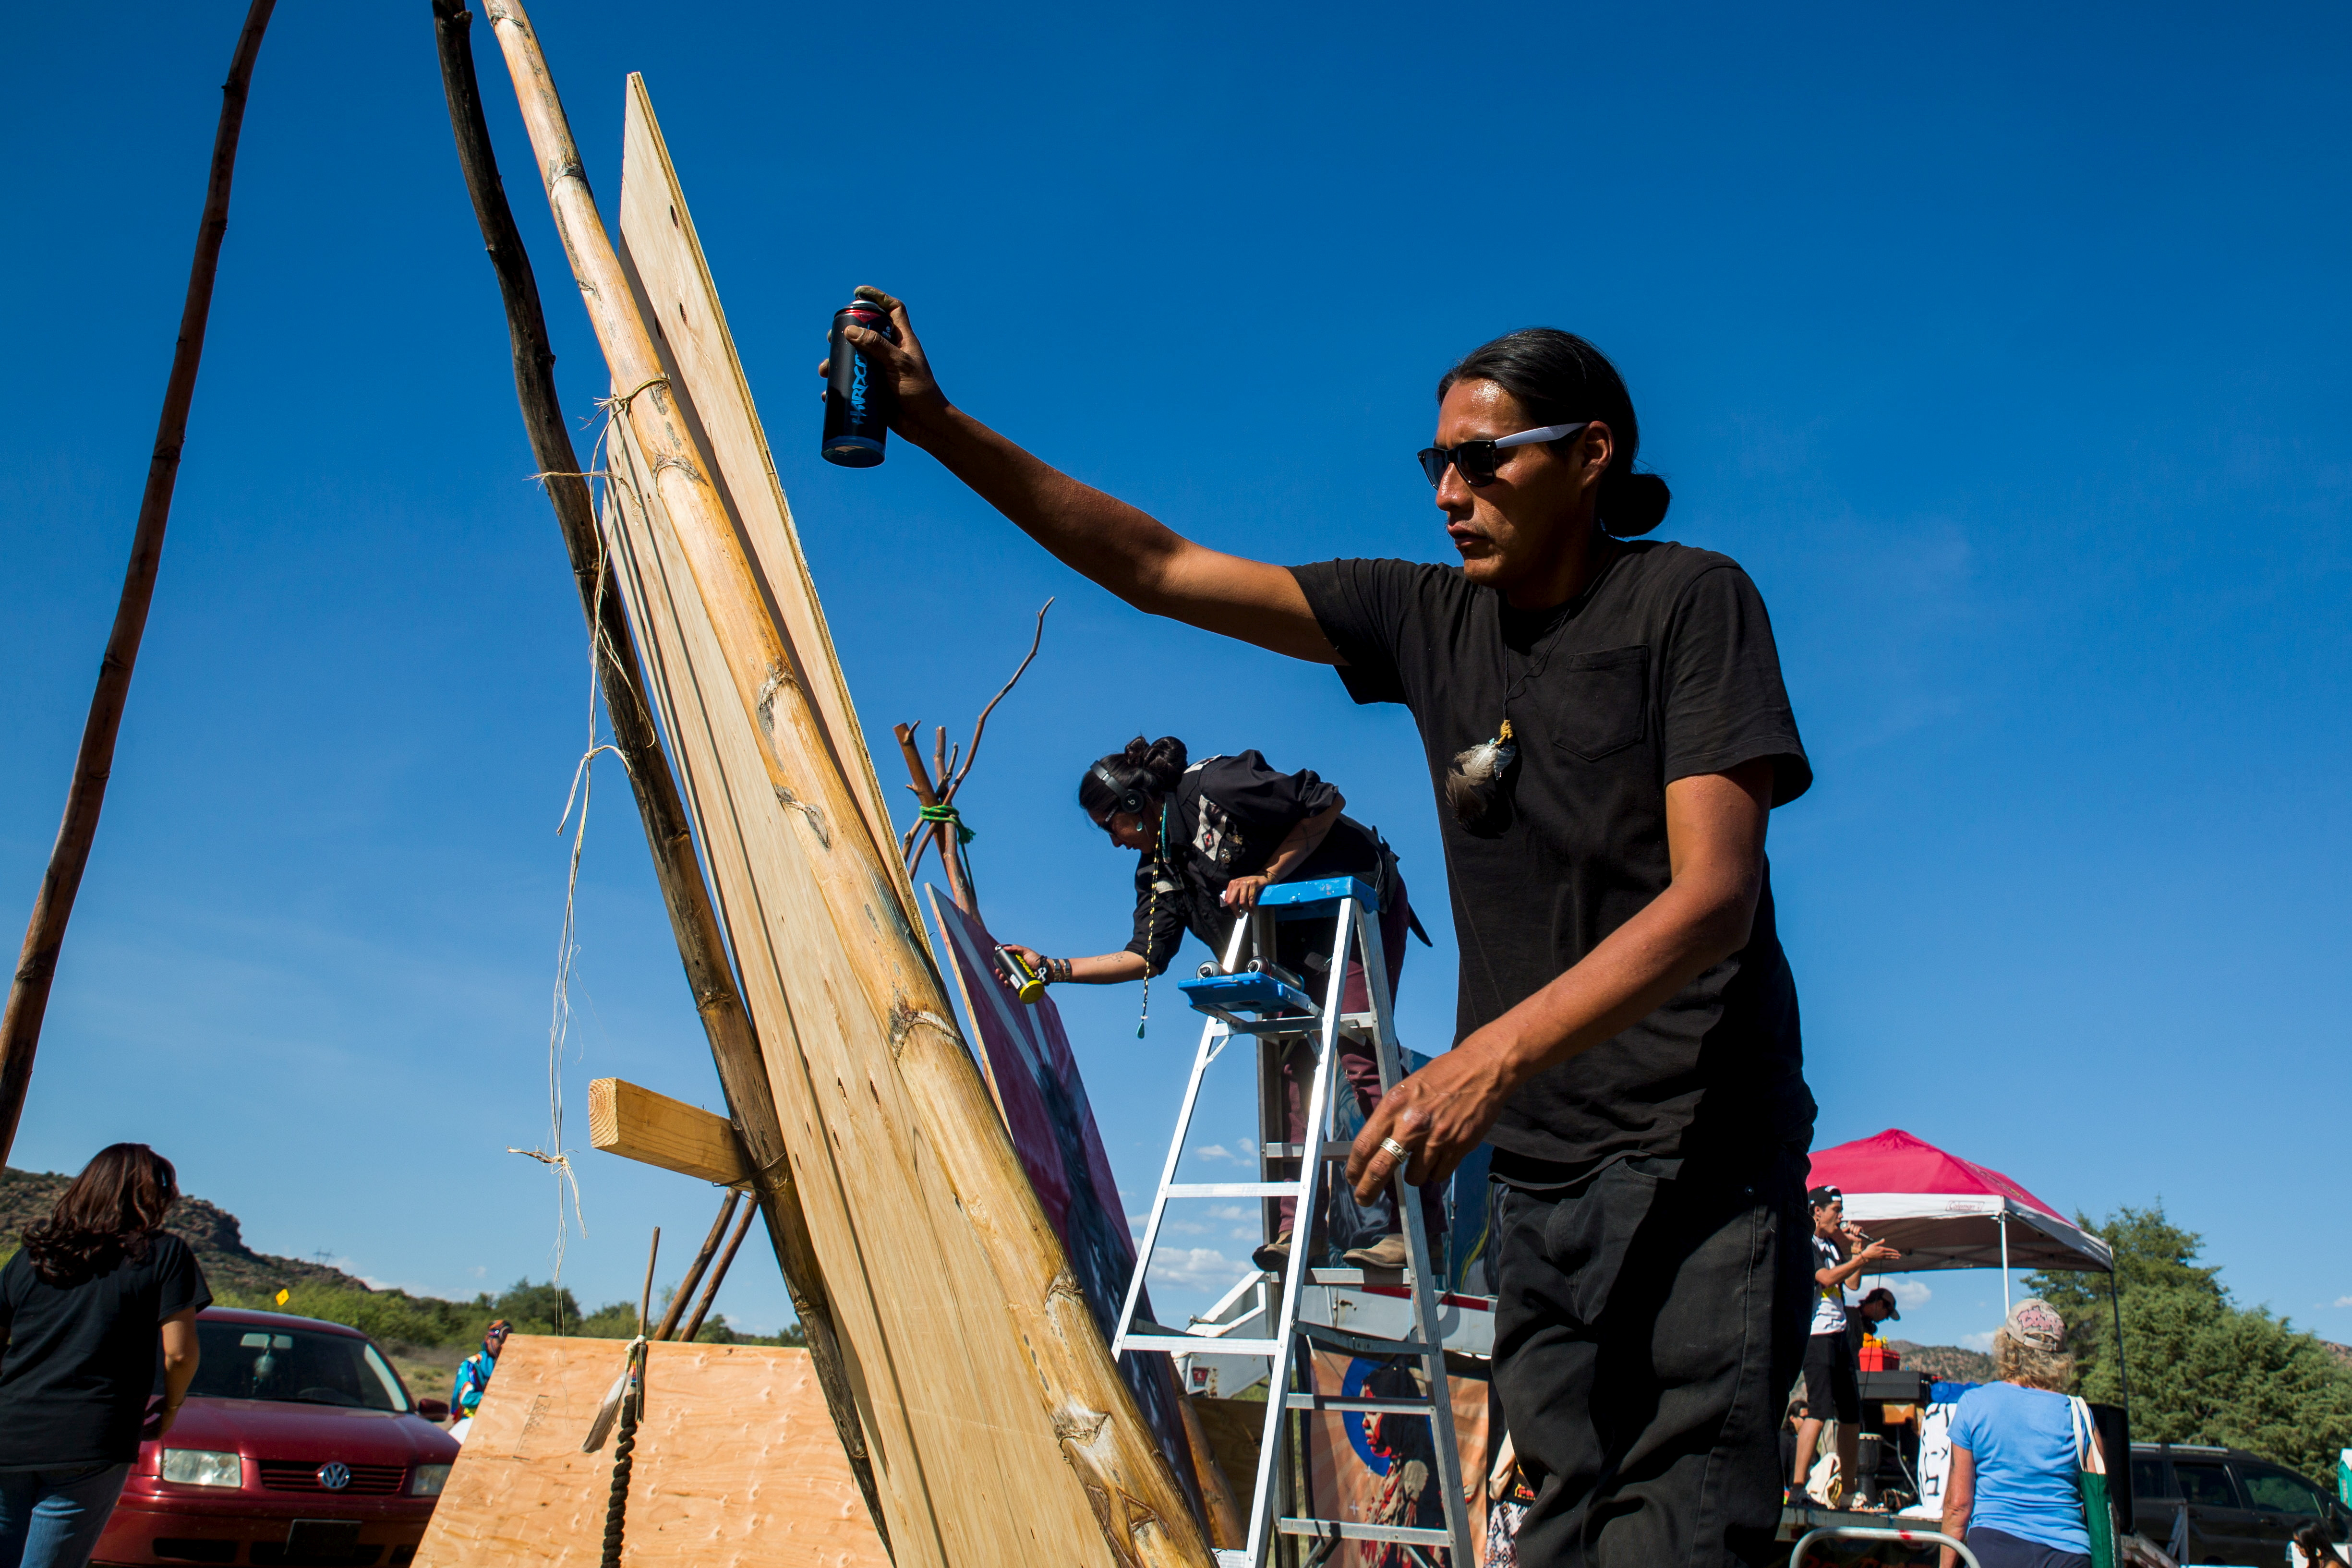 Jake Toledo, 28, of the Navajo nation paints during a rally at the Oak Flat Campground in the Tonto National Forest near Superior, Arizona May 30, 2015. Considered a home to the San Carlos Apache tribe, the site is slated for development into a copper mine by Rio Tinto. REUTERS/Deanna Dent/File Photo